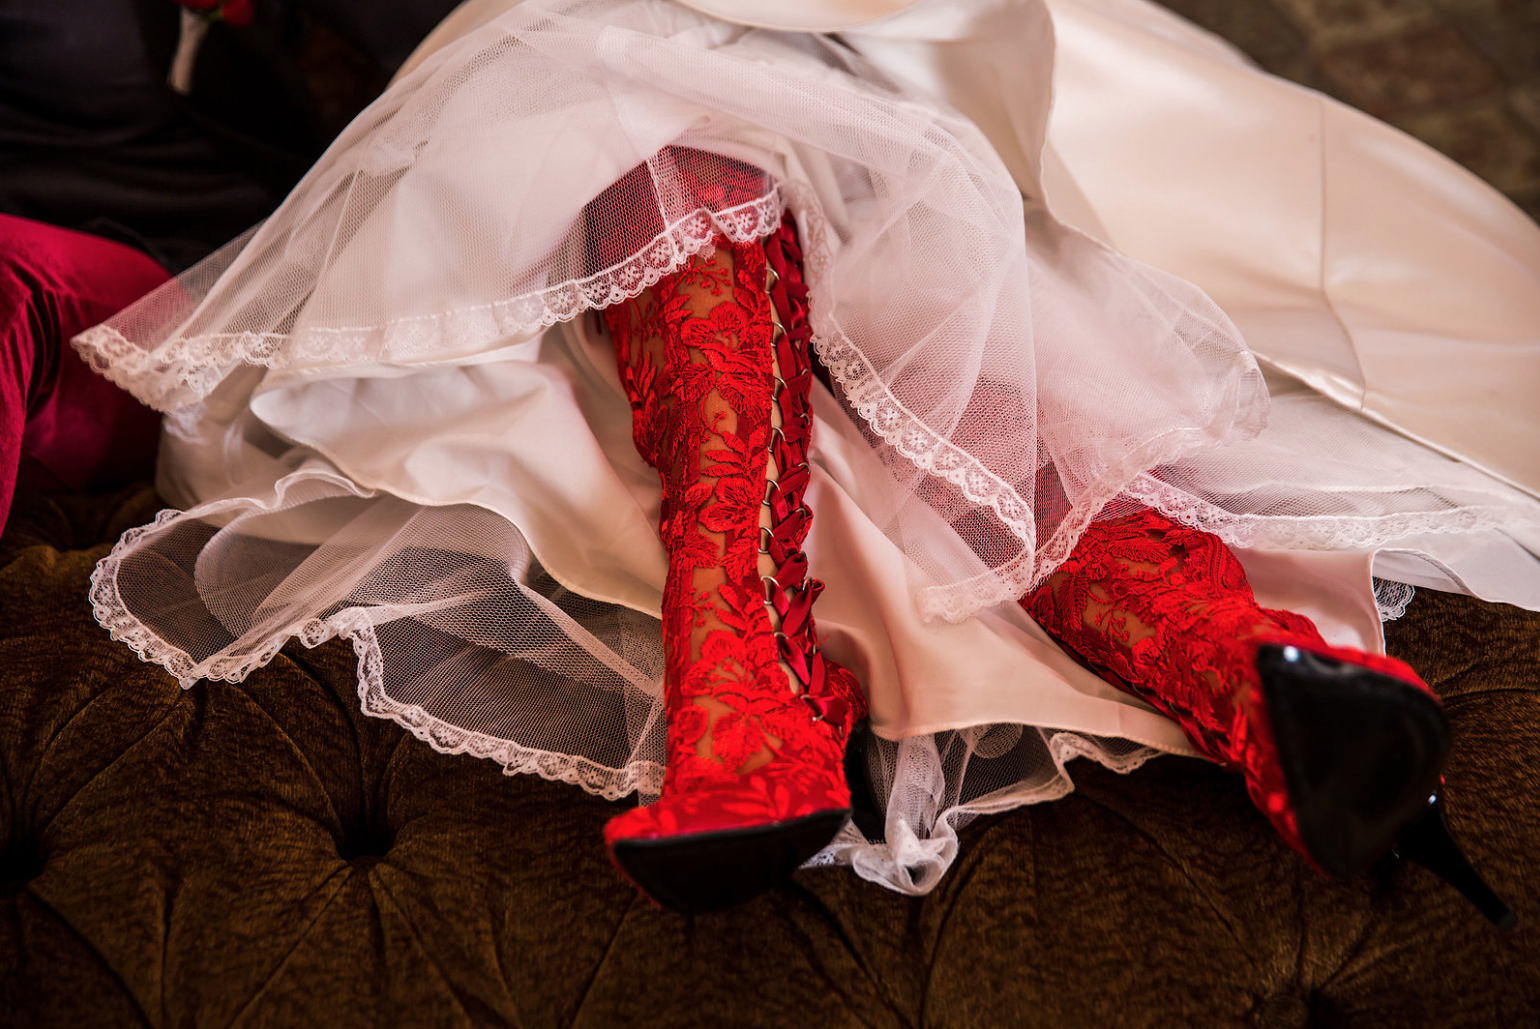 Real House of Elliot bride Misty wore our red Goodnight Sweetheart lace wedding boots for her marriage to Tammy!